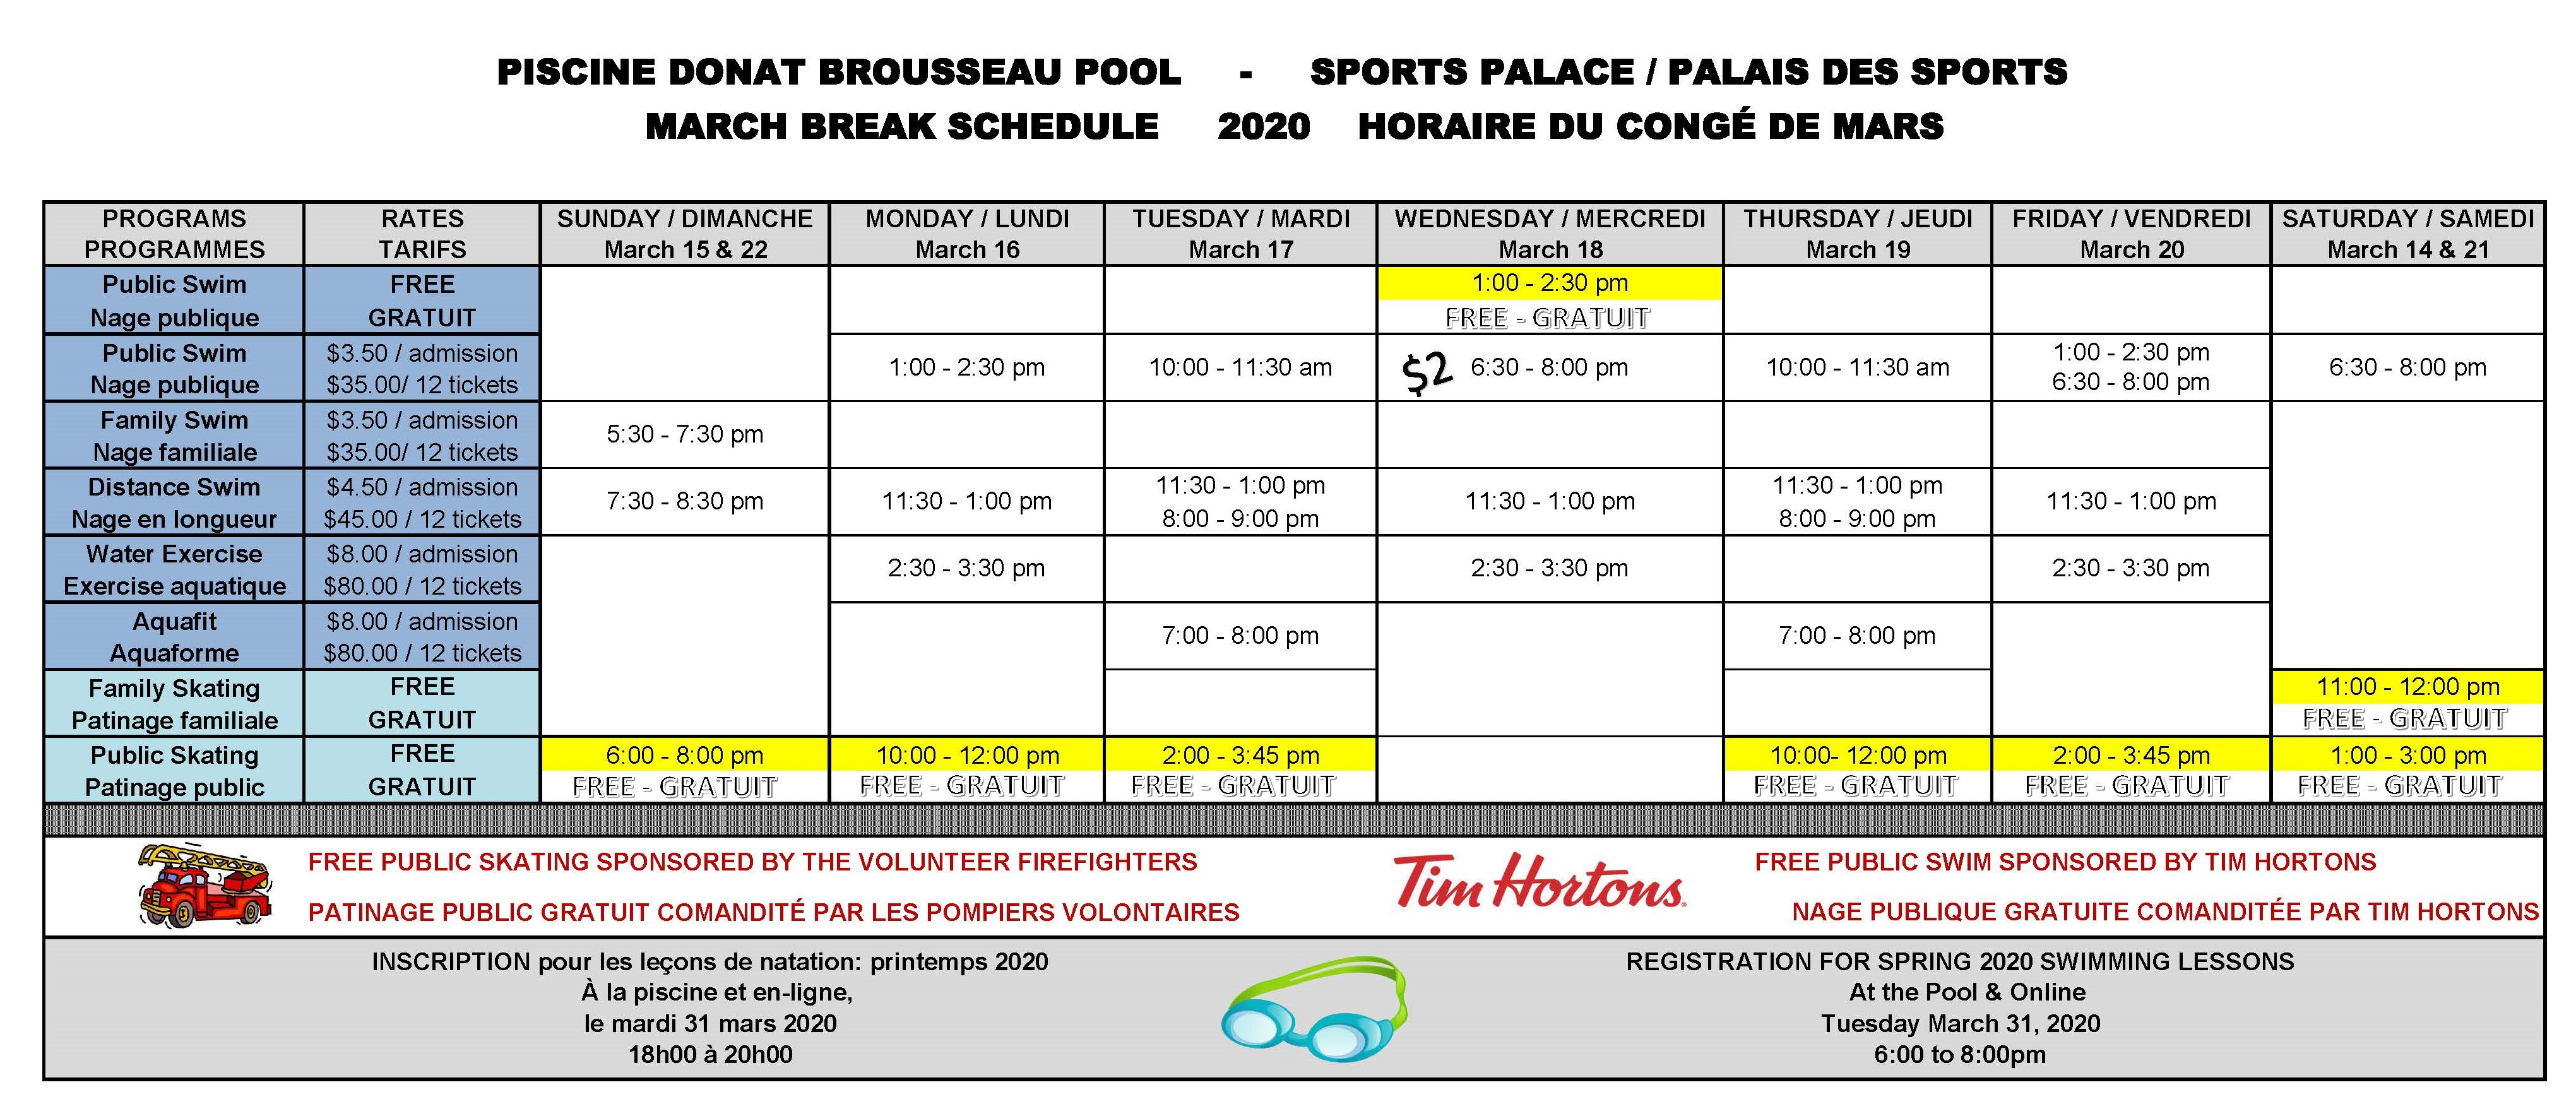 March Break Schedule 2020